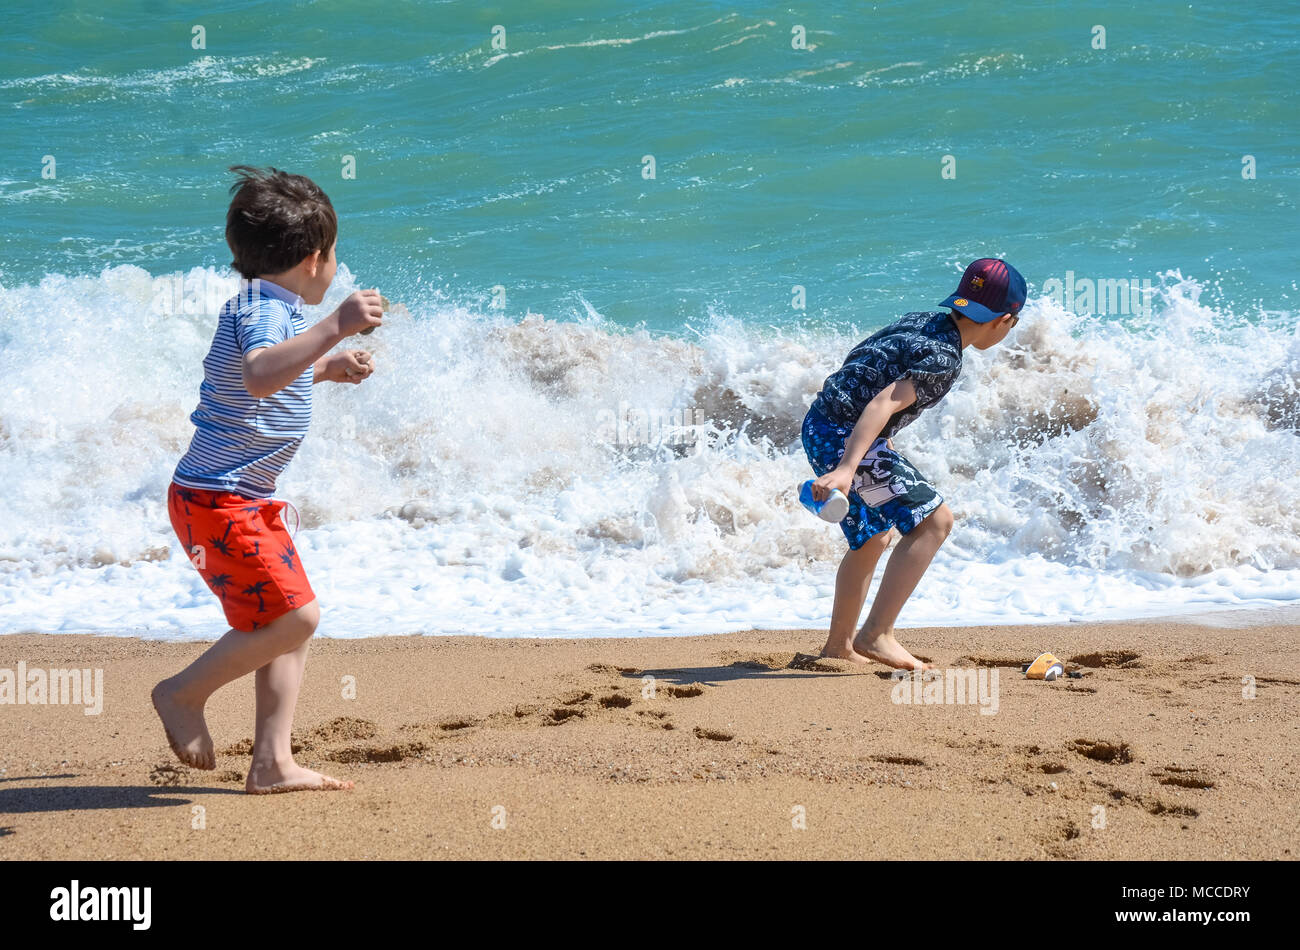 two-young-brothers-play-together-on-a-sandy-beach-close-to-the-waters-edge-MCCDRY.jpg